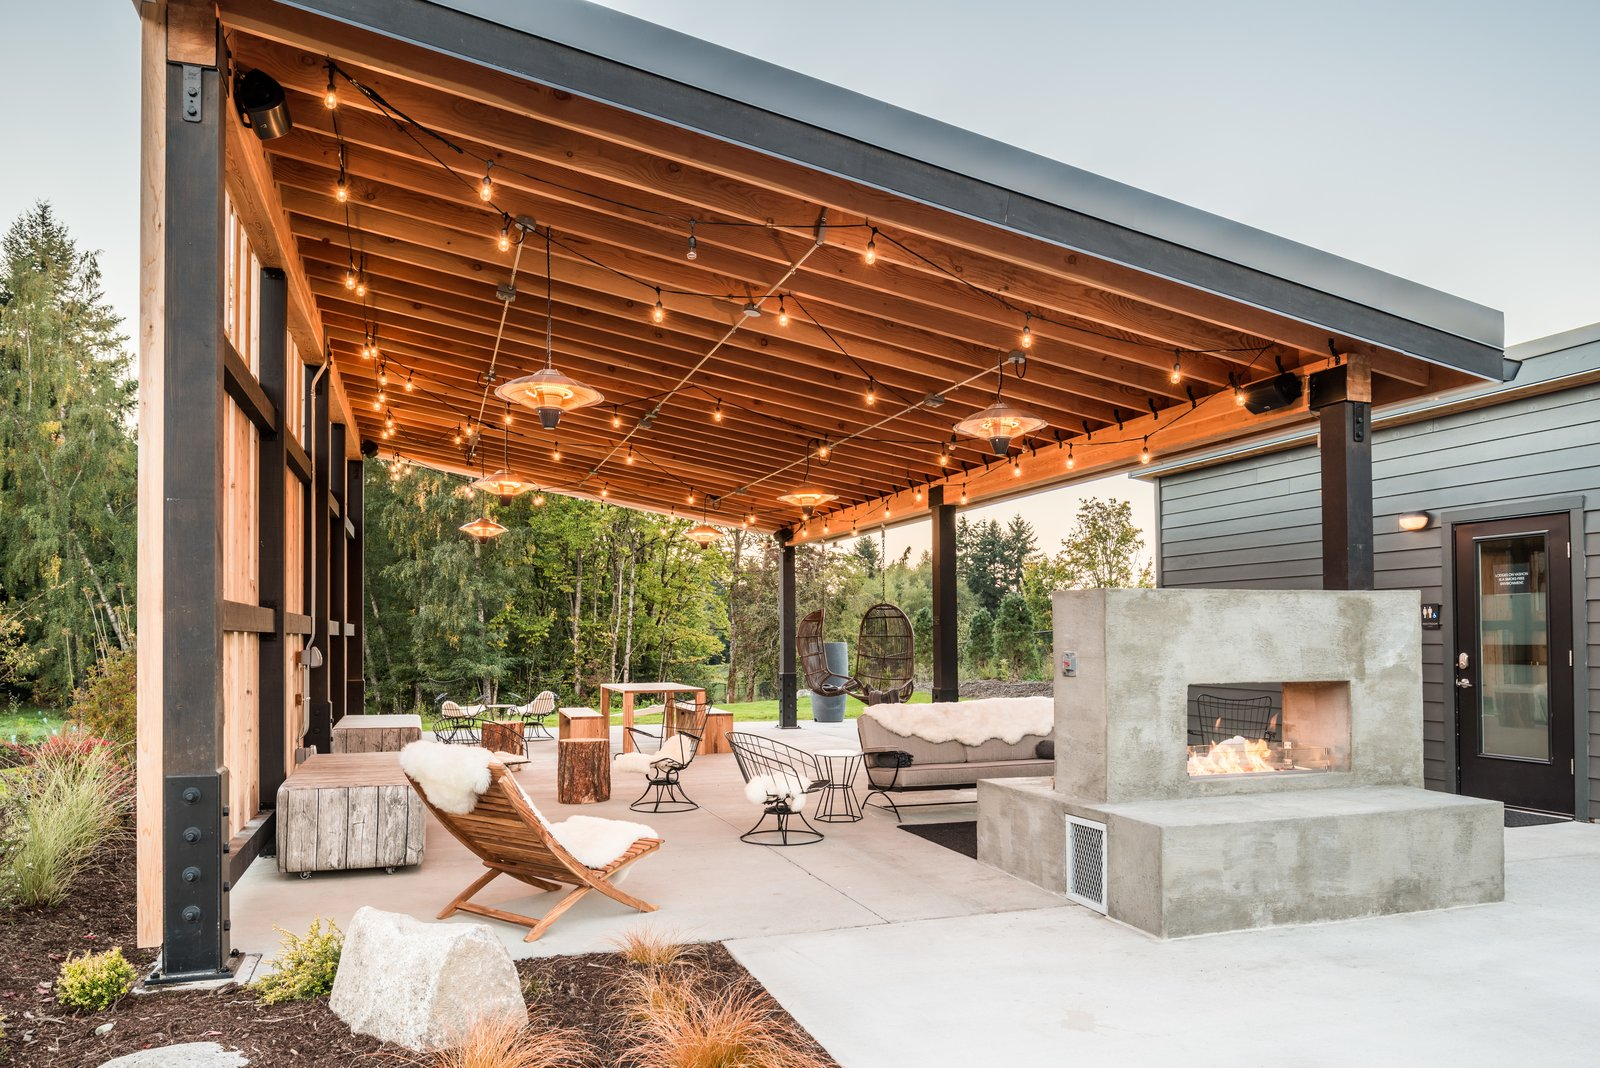 Outdoor, Concrete Patio, Porch, Deck, Back Yard, Shrubs, Trees, Large Patio, Porch, Deck, Hanging Lighting, and Grass The Pavilion has plenty of cozy seating, a cast concrete fireplace, and a sound system.  Photo 5 of 7 in Serenity Awaits at These Prefab Cabin Rentals on Vashon Island